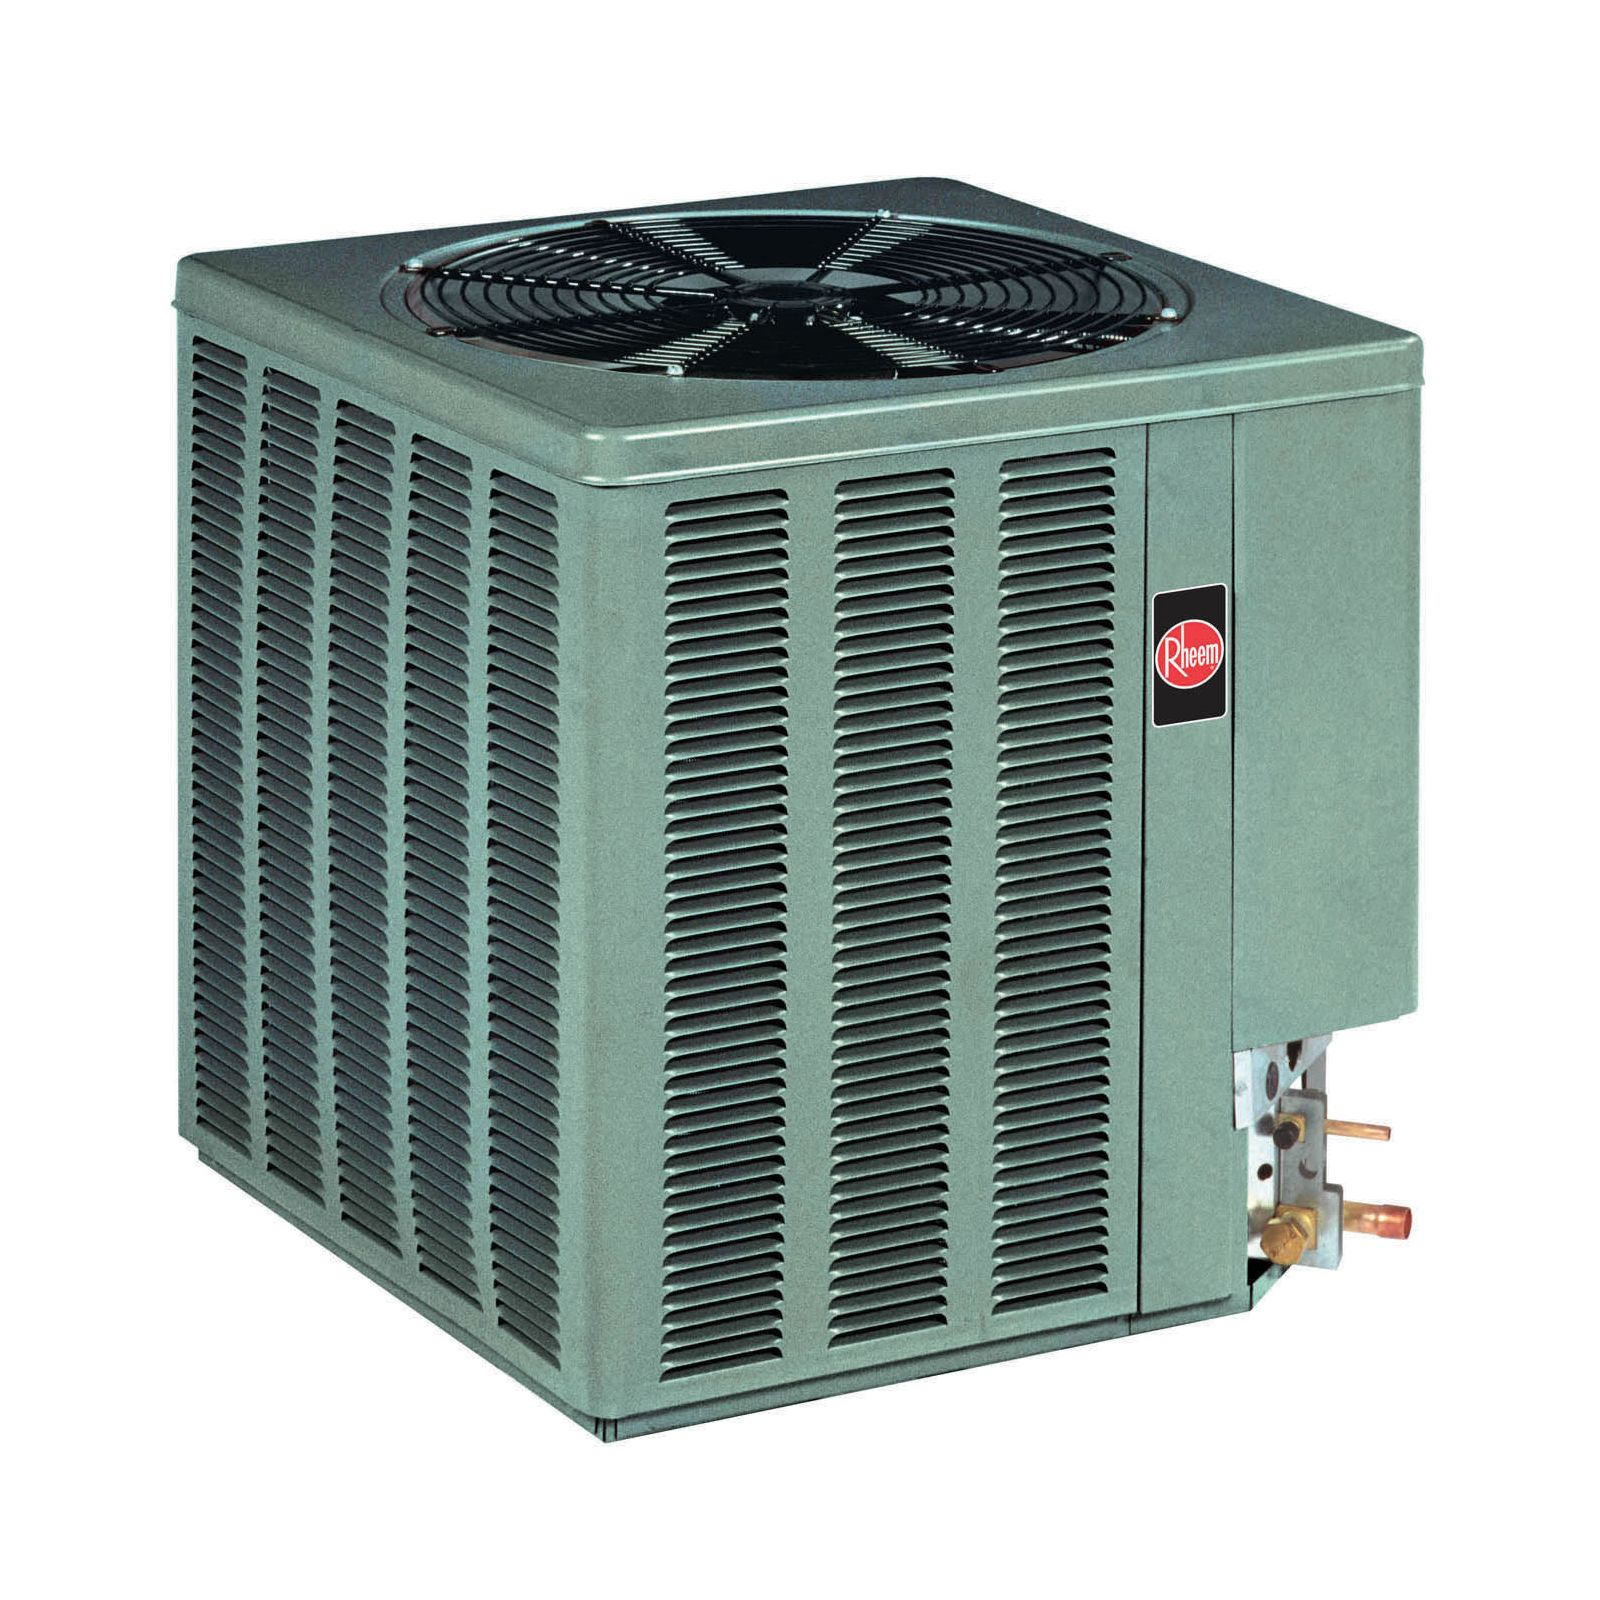 Rheem 15PJL30A01 - Value Series 2 1/2 Ton, 15 SEER, R410A Heat Pump